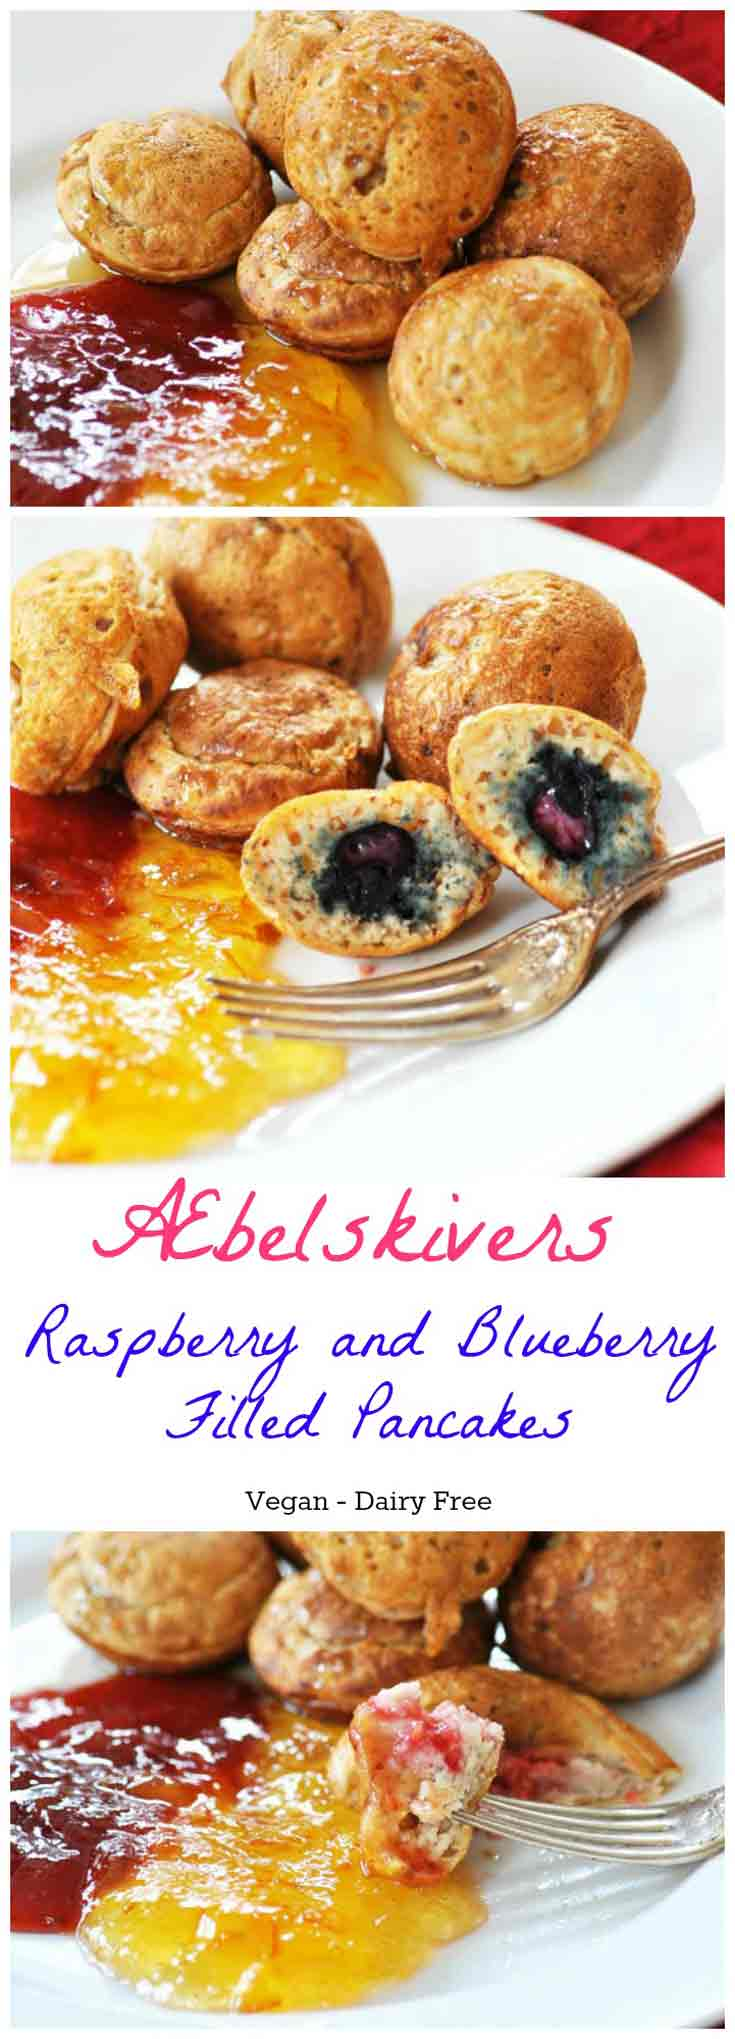 Æbelskivers - Filled Pancake Balls! This Danish filled pancake recipe is vegan and dairy-free. Light, fluffy, and delicious. Fill them with fruit, chocolate, nuts, or whatever you like. www.veganosity.com